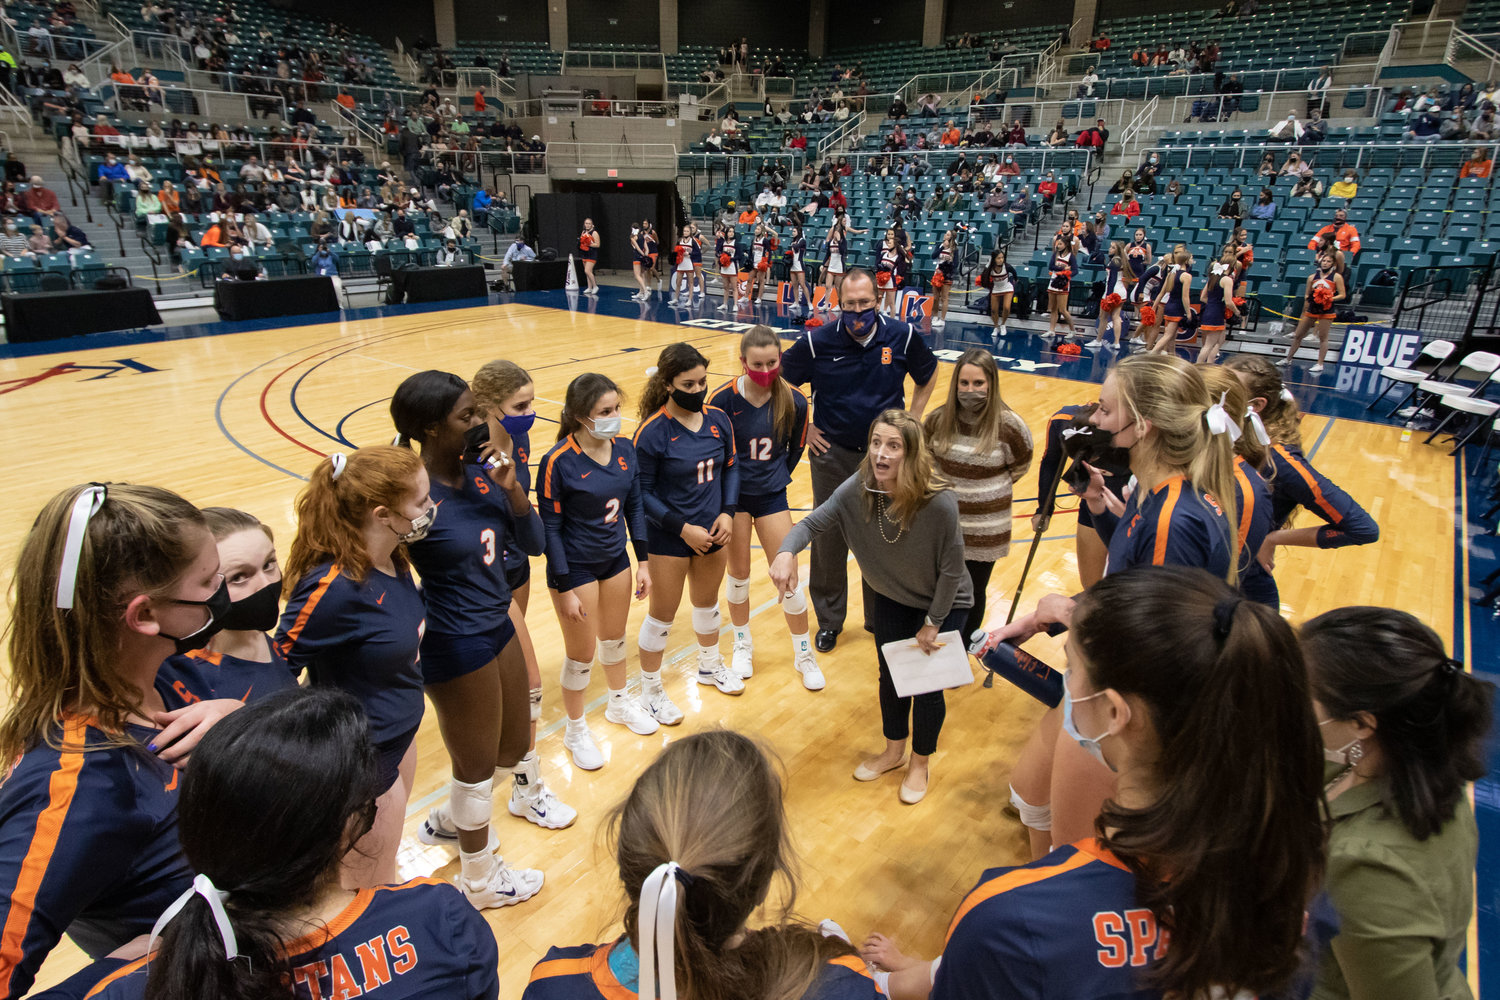 Seven Lakes coach Amy Cataline talks to her team during the team's Class 6A state semifinal match against San Antonio Reagan on Dec. 7 at the Merrell Center.